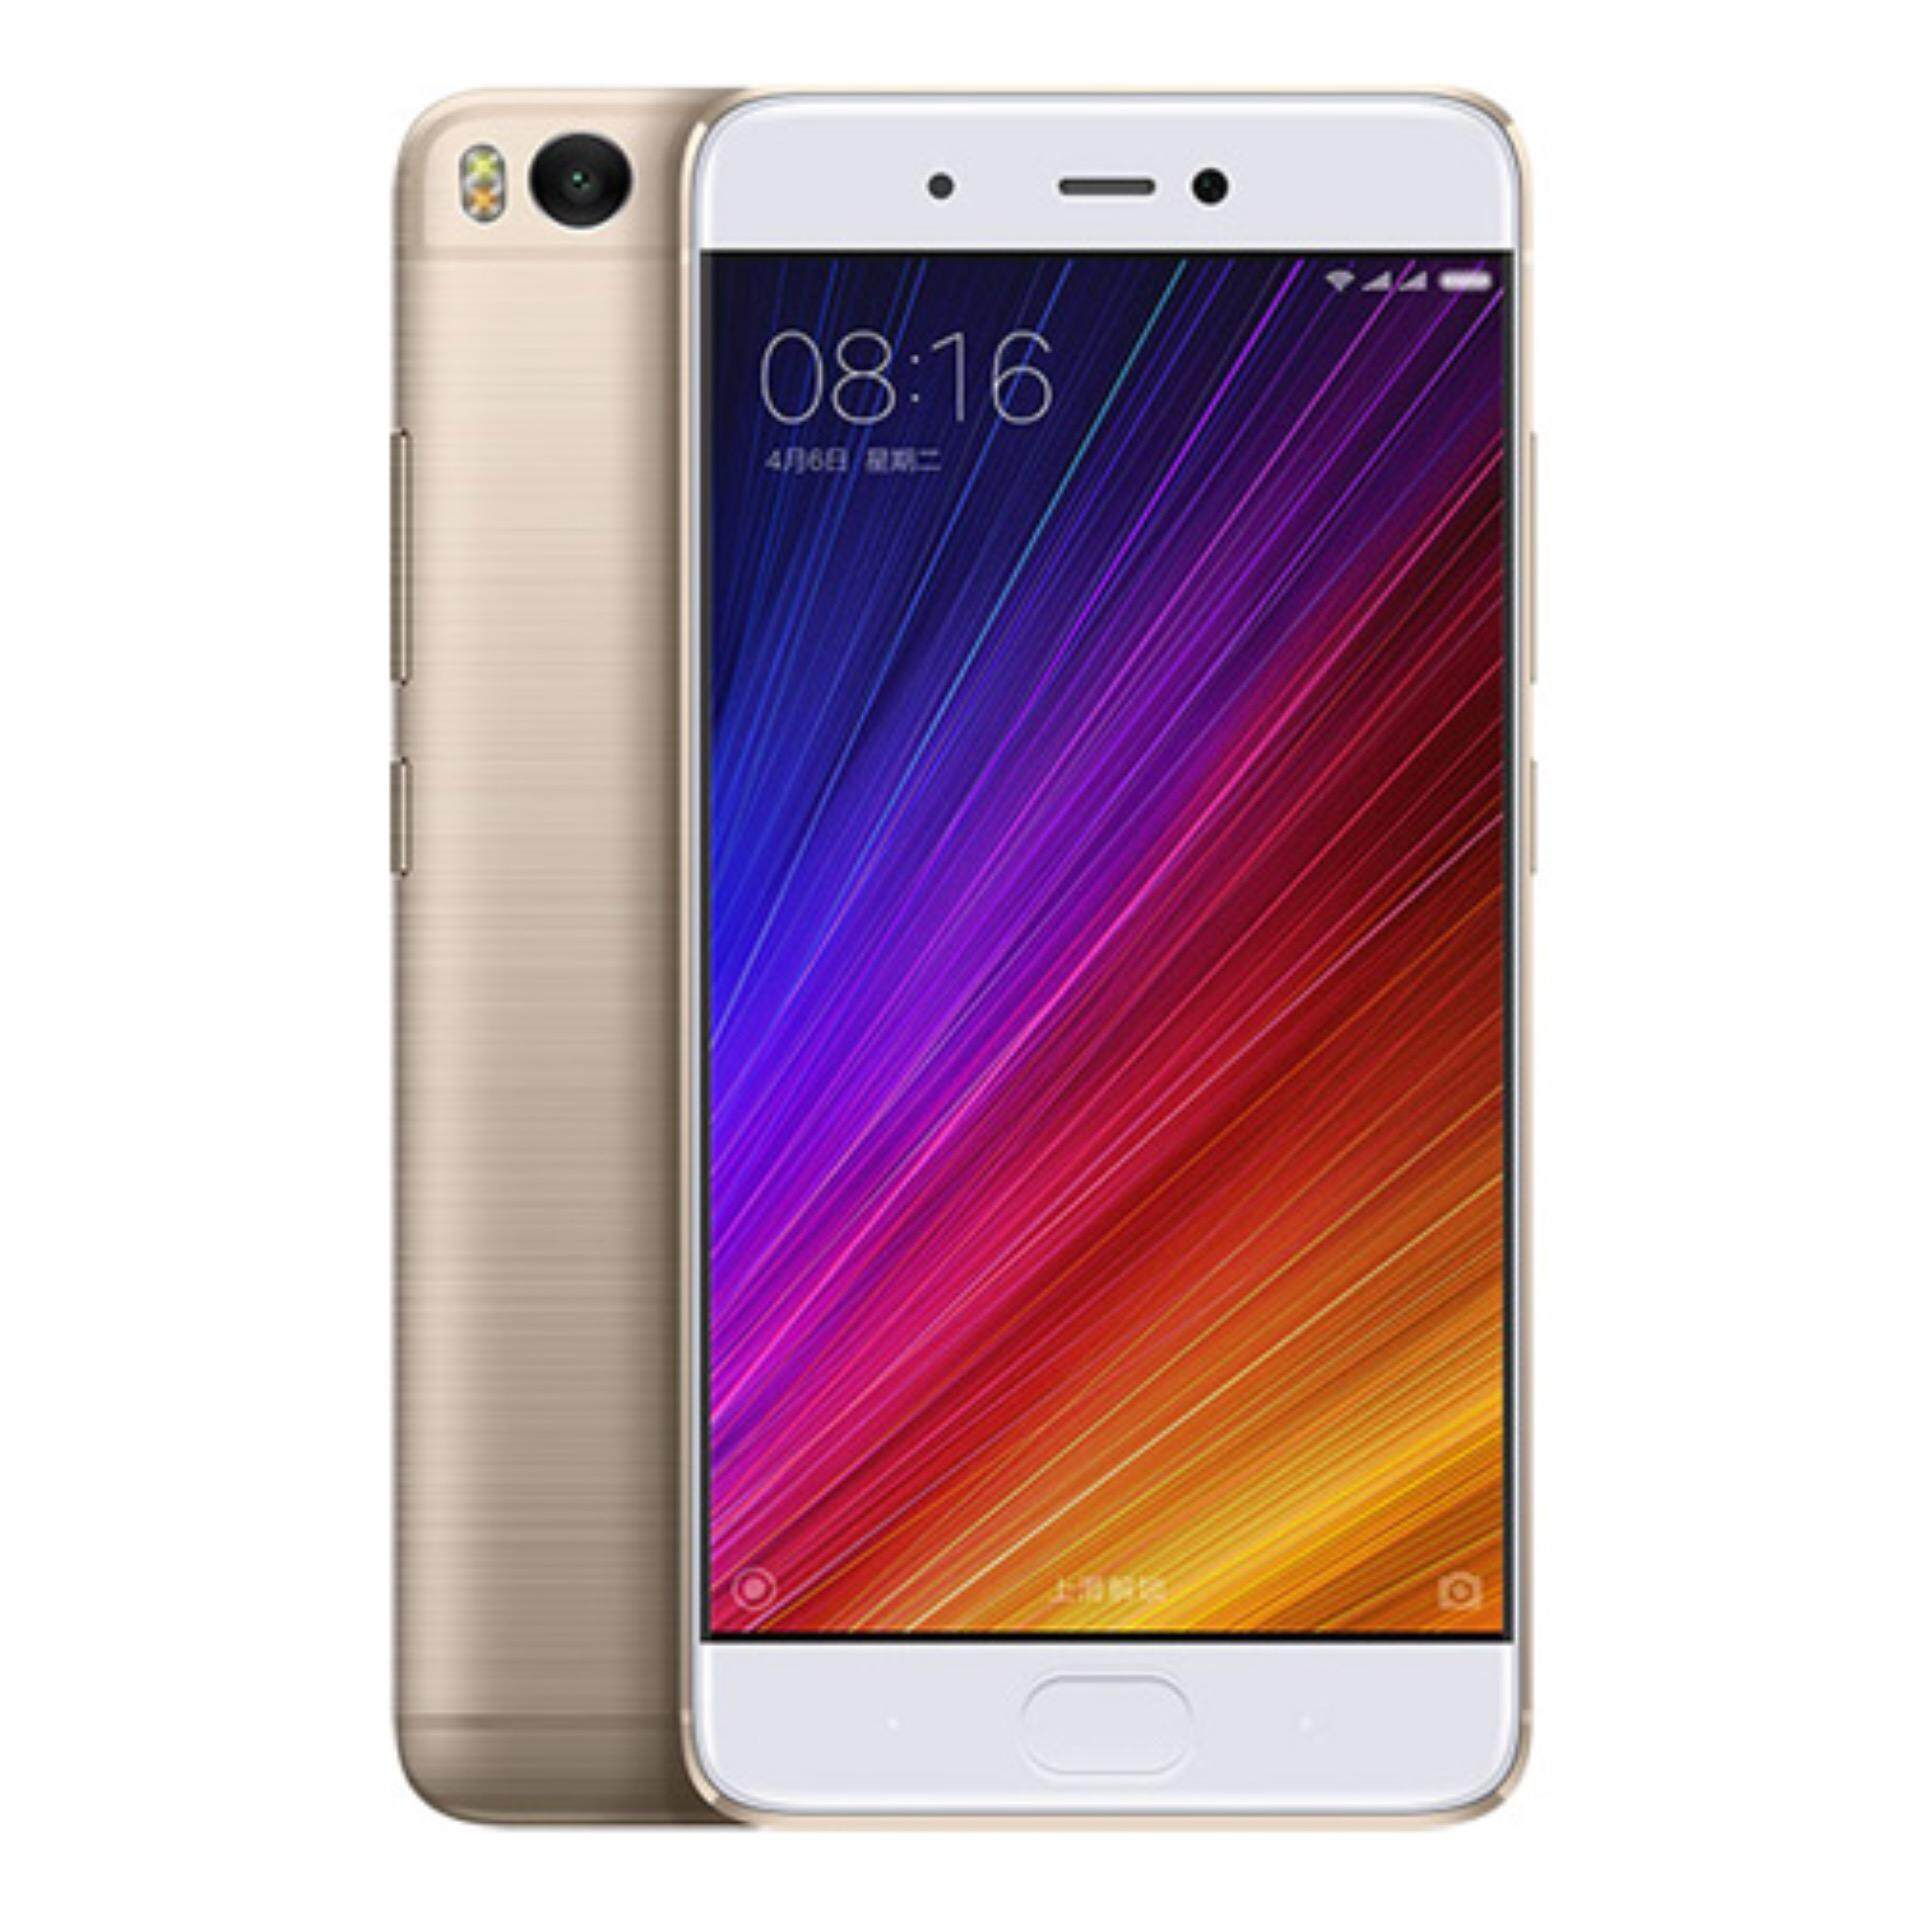 XIAOMI MI 5S 64GB ROM, 3GB RAM (Gold), Original Imported set, Global ROM - Play store, Mi5S Snapdragon